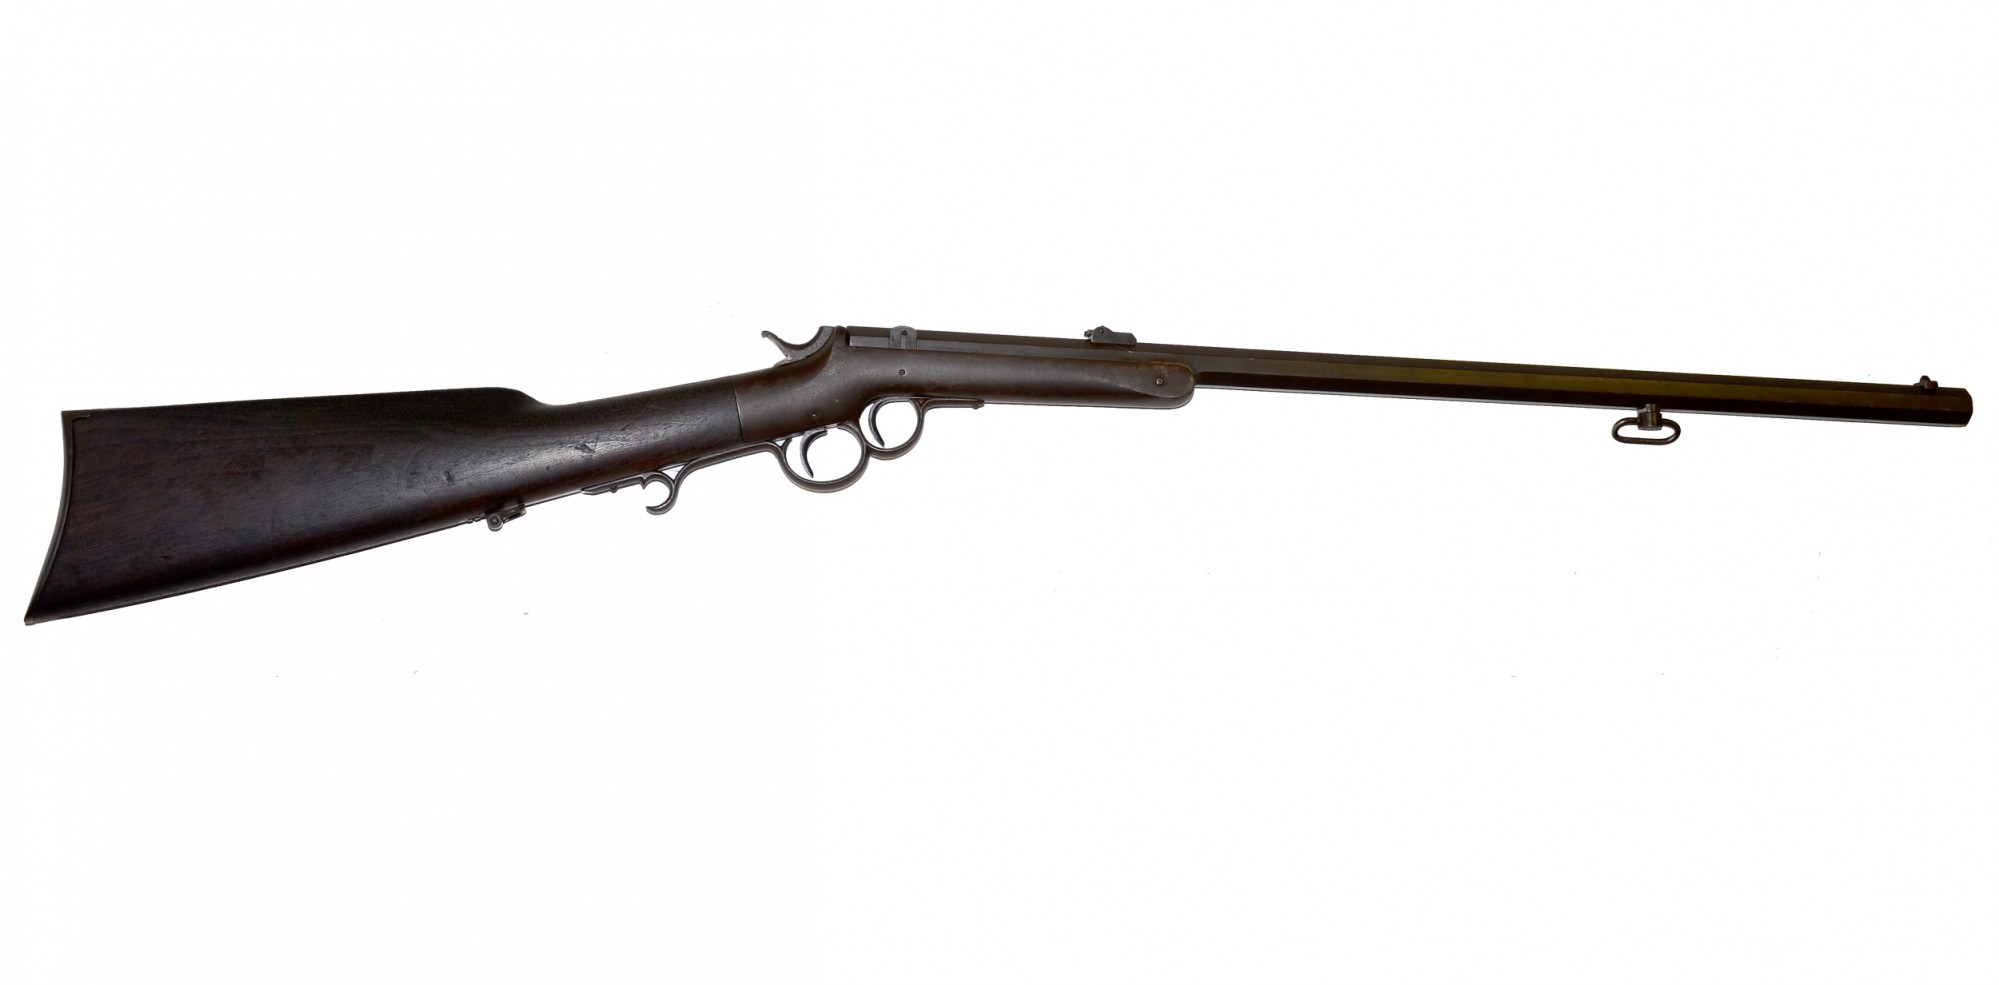 RARE, ORIGINAL 'J. CUTLER FULLER-MARKED' FRANK WESSON RIFLE